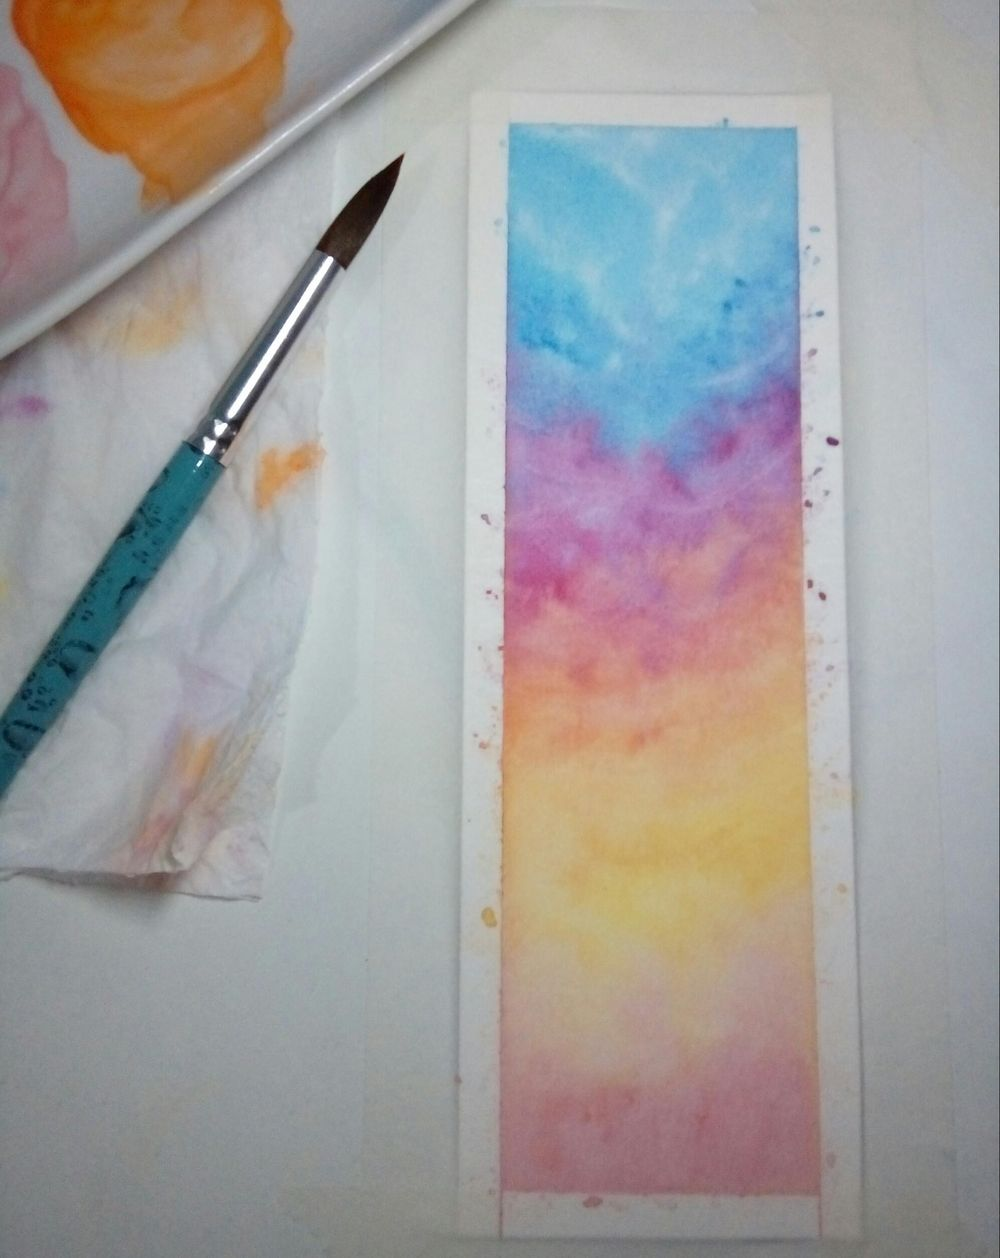 Watercolor skies - image 1 - student project